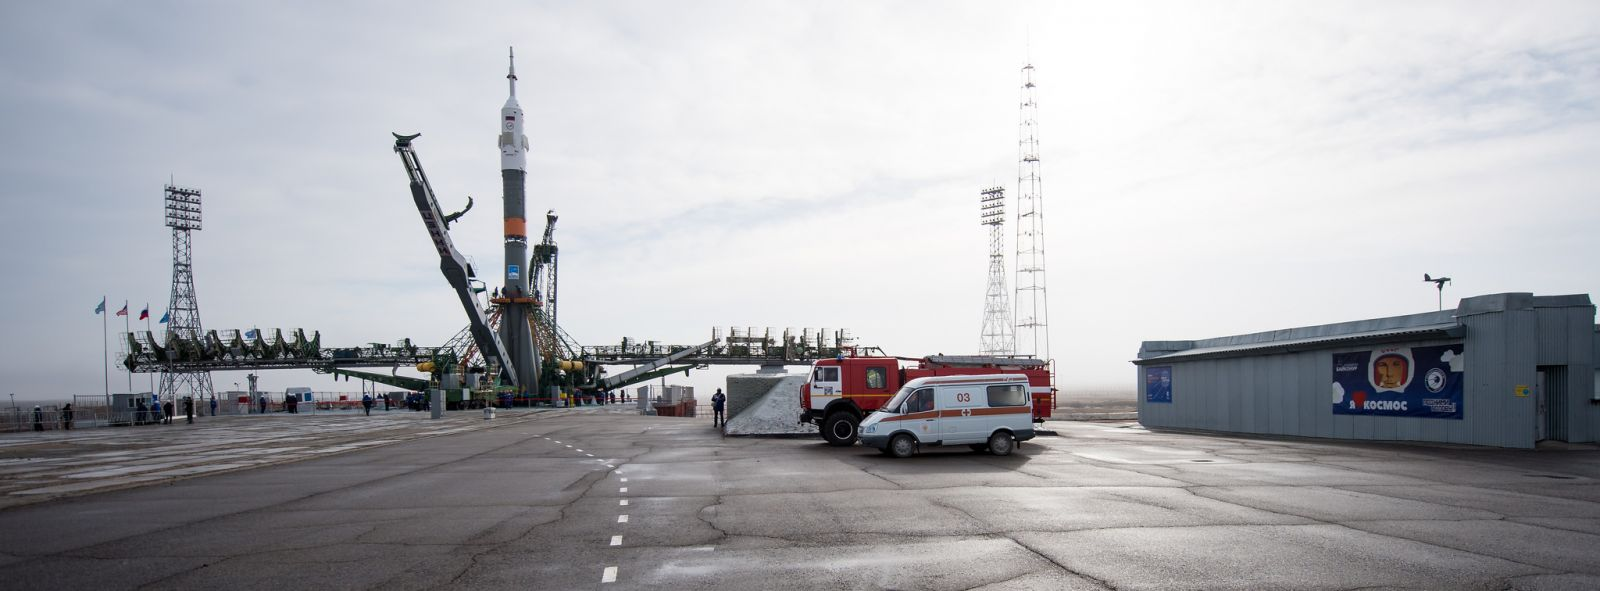 The Soyuz-FG rocket with Soyuz MS-08 stands at the launch pad at Baikonur Cosmodrome. Photo Credit: Joel Kowsky / NASA